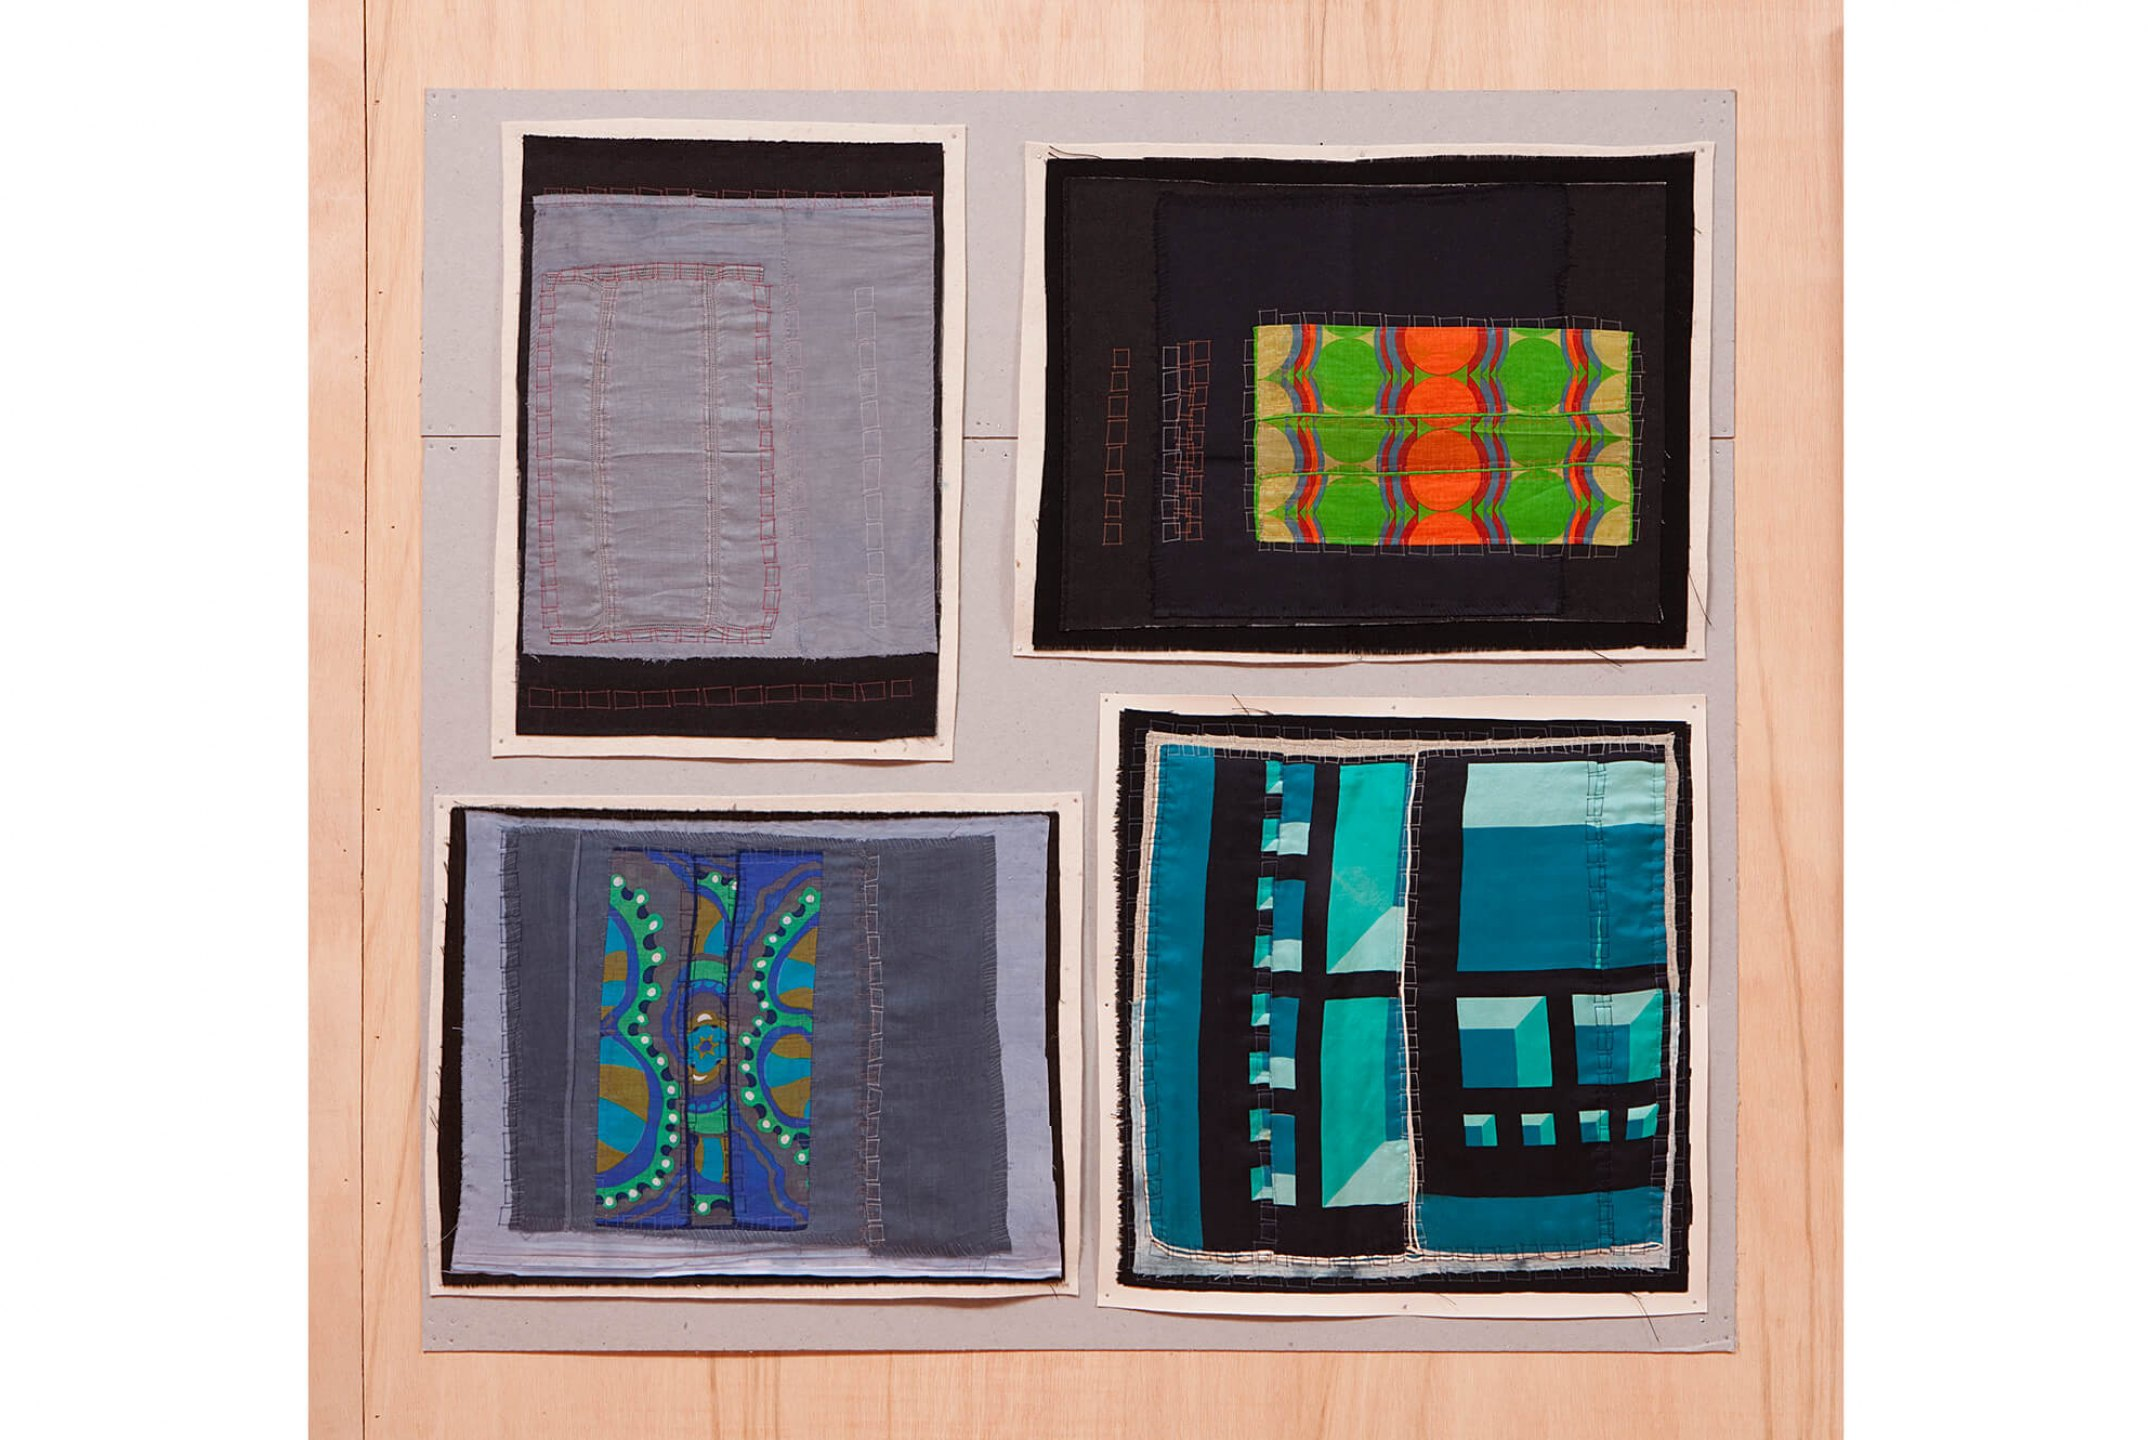 f.marquespeteado,&nbsp;<em>Malaise neo-concretista 06,</em> 2011, linens and cottons hand embroidered on industrial felt / PVC, 97 × 100 cm - Mendes Wood DM